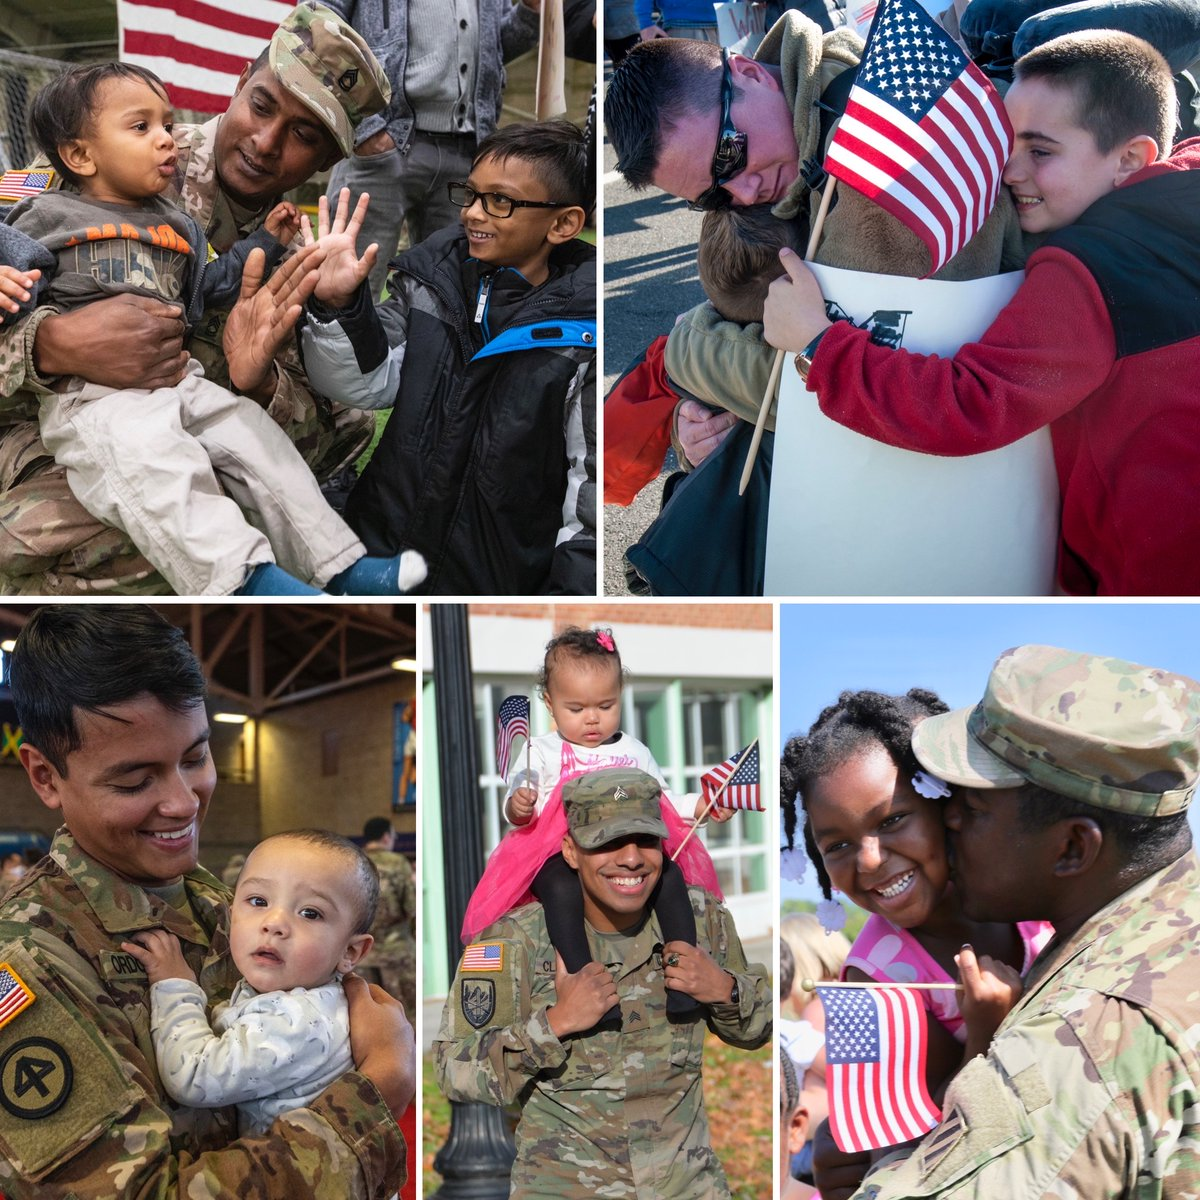 Happy Father's Day to all of our National Guard dads! #FathersDay https://t.co/sXOl0Kdbu0